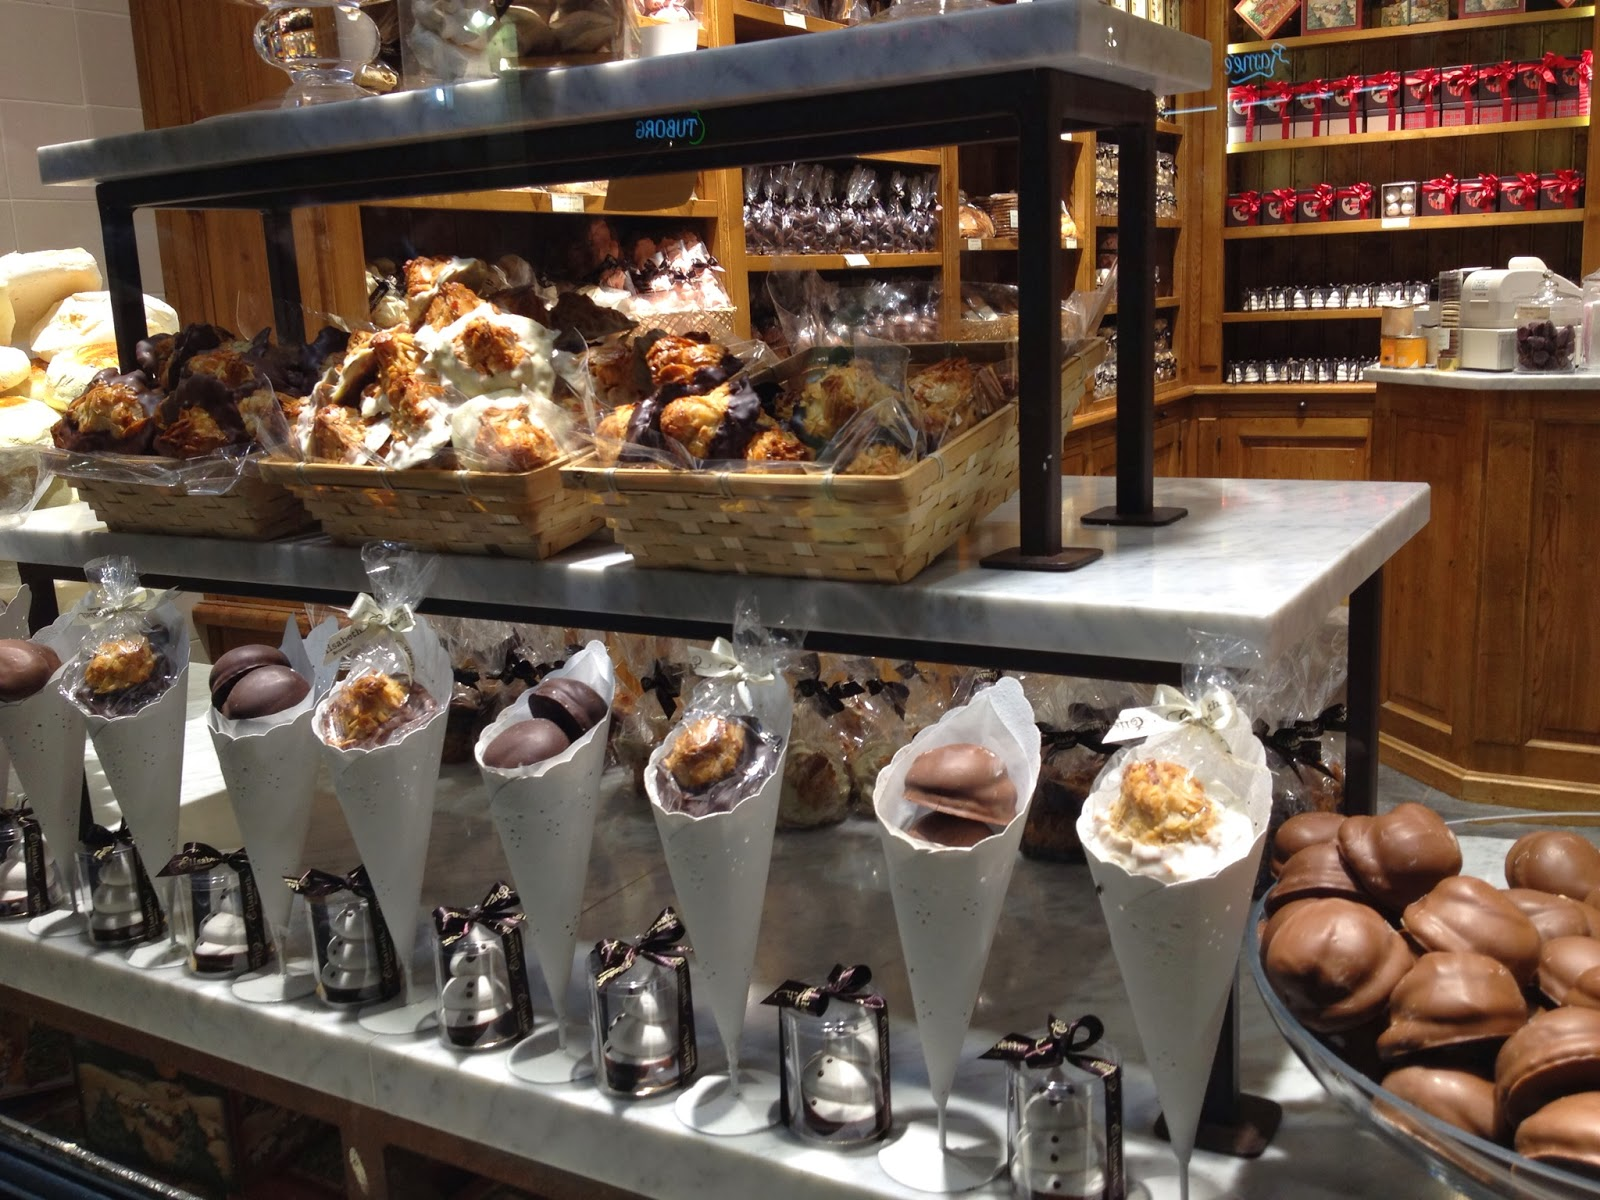 Brussels - There are tons of chocolate shops near Grand Place